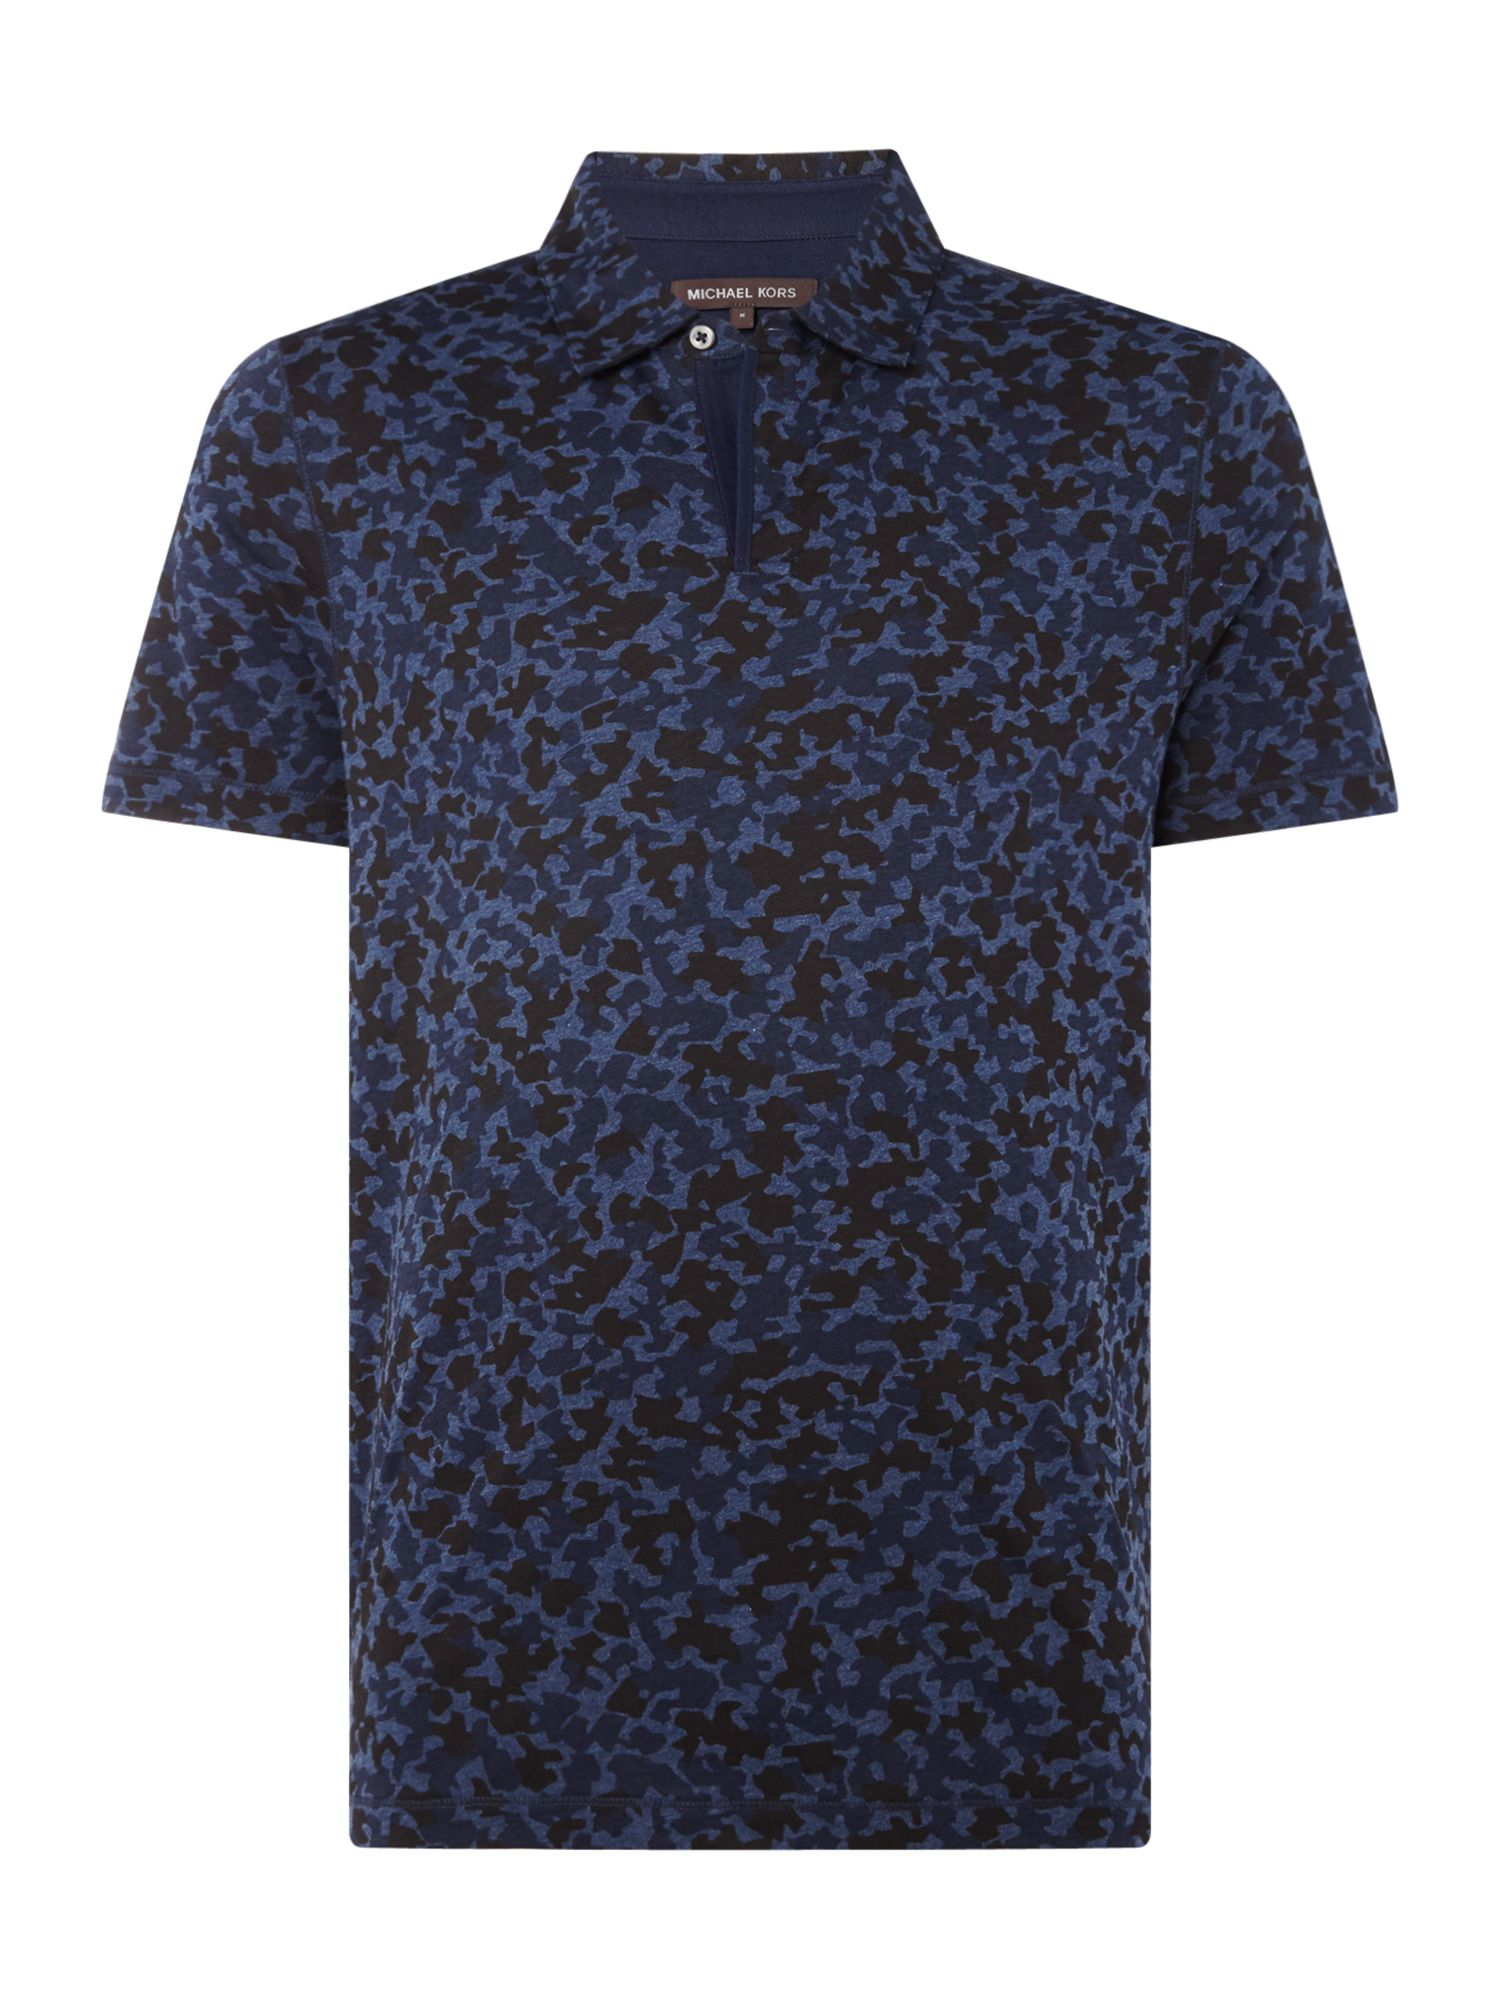 Men's Michael Kors Camo Print Polo Shirt, Blue